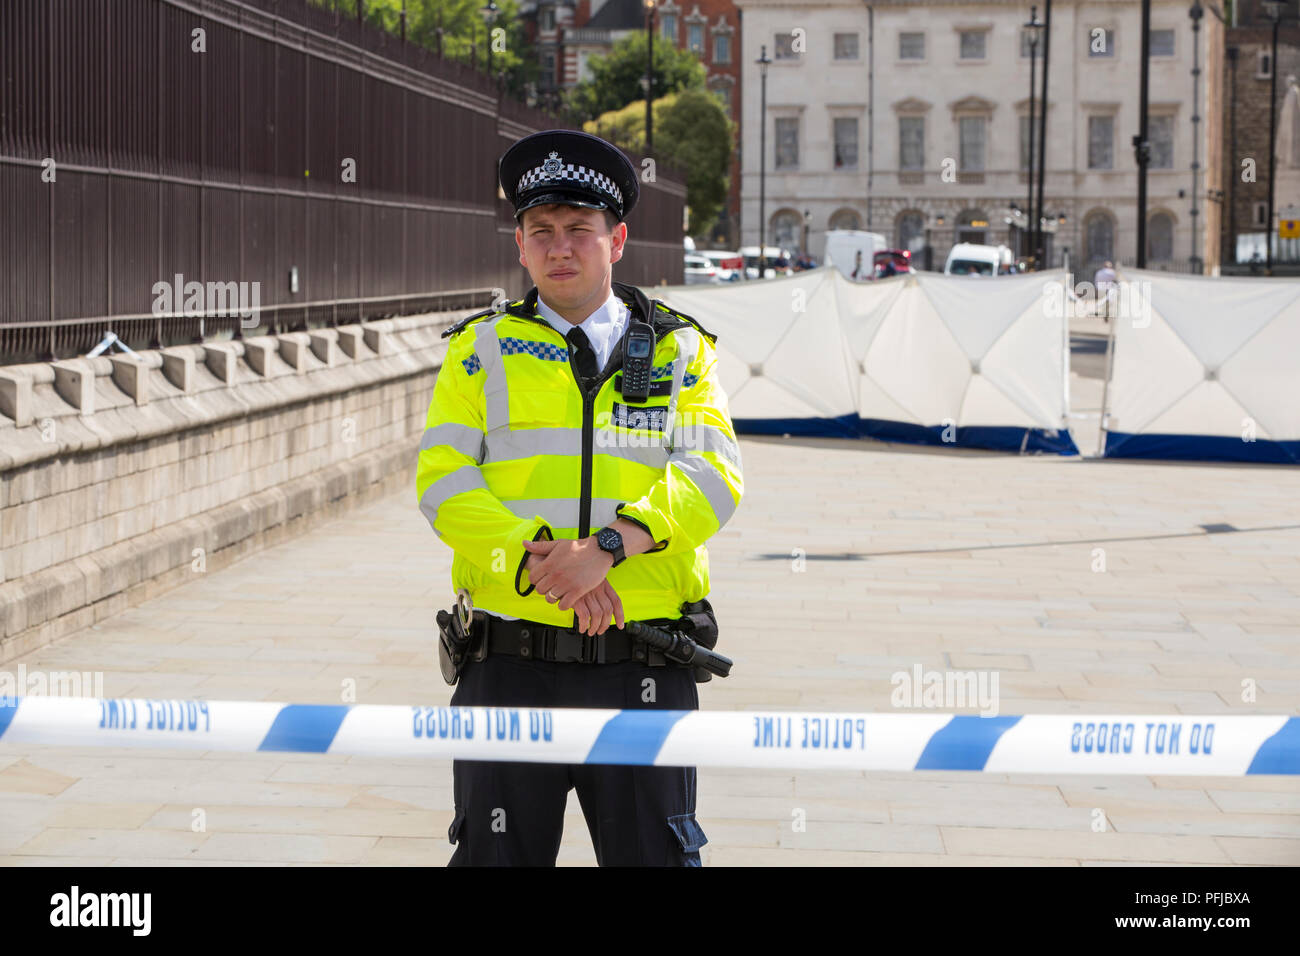 Police barriers, sheild the aftermath of the latest incident where a man used a car to deliberately target pedestrians outside the Houses of Parliamen - Stock Image